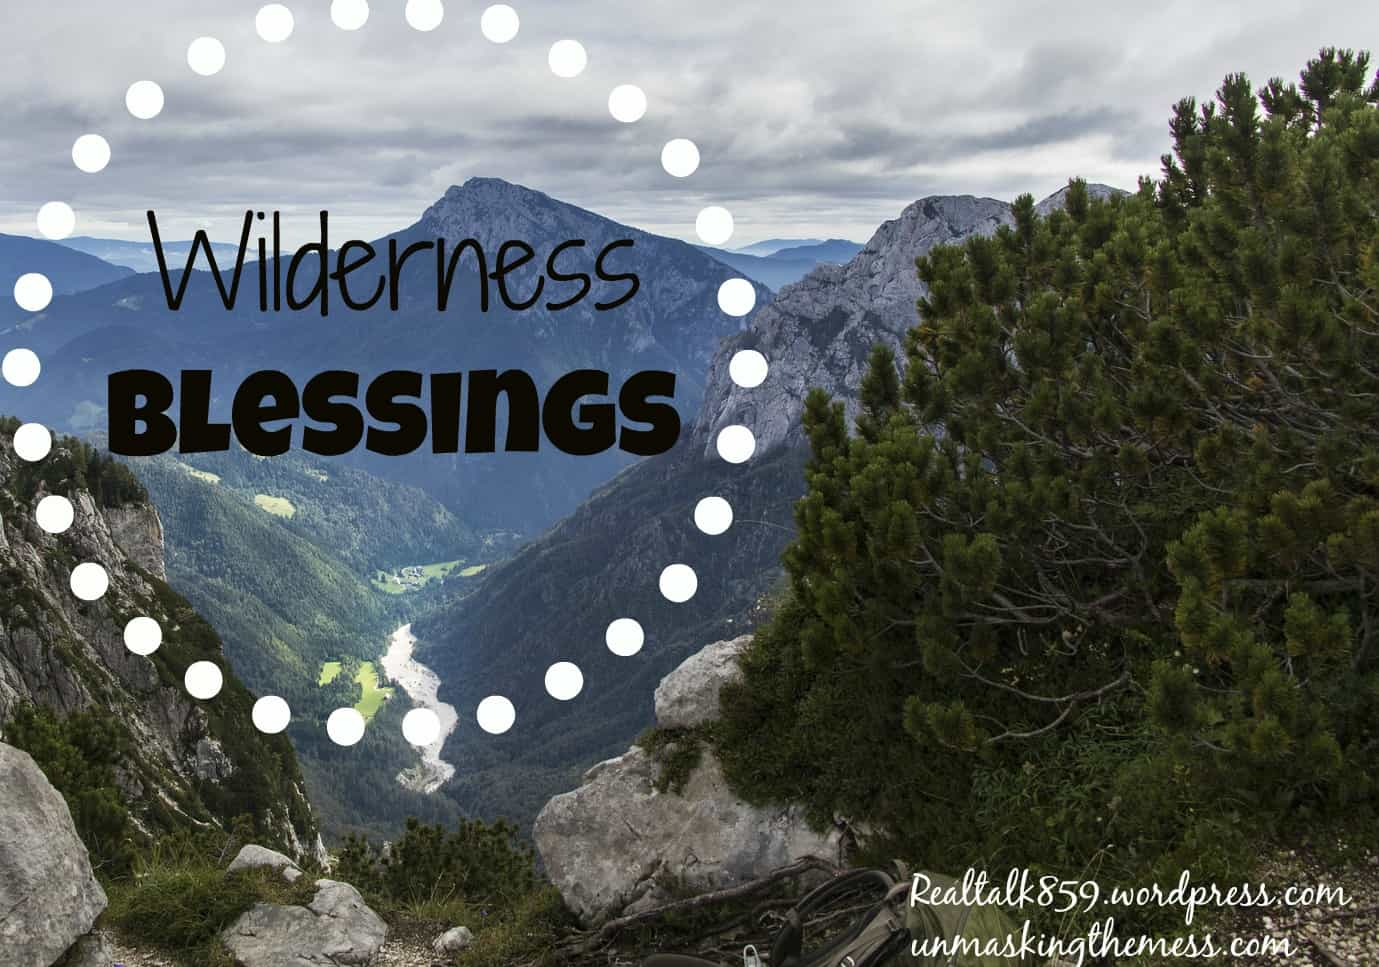 Wilderness Blessings. God's waiting in the Wilderness to bless us, if we can leave our comfort zone. Will we trust God and receive our blessings?